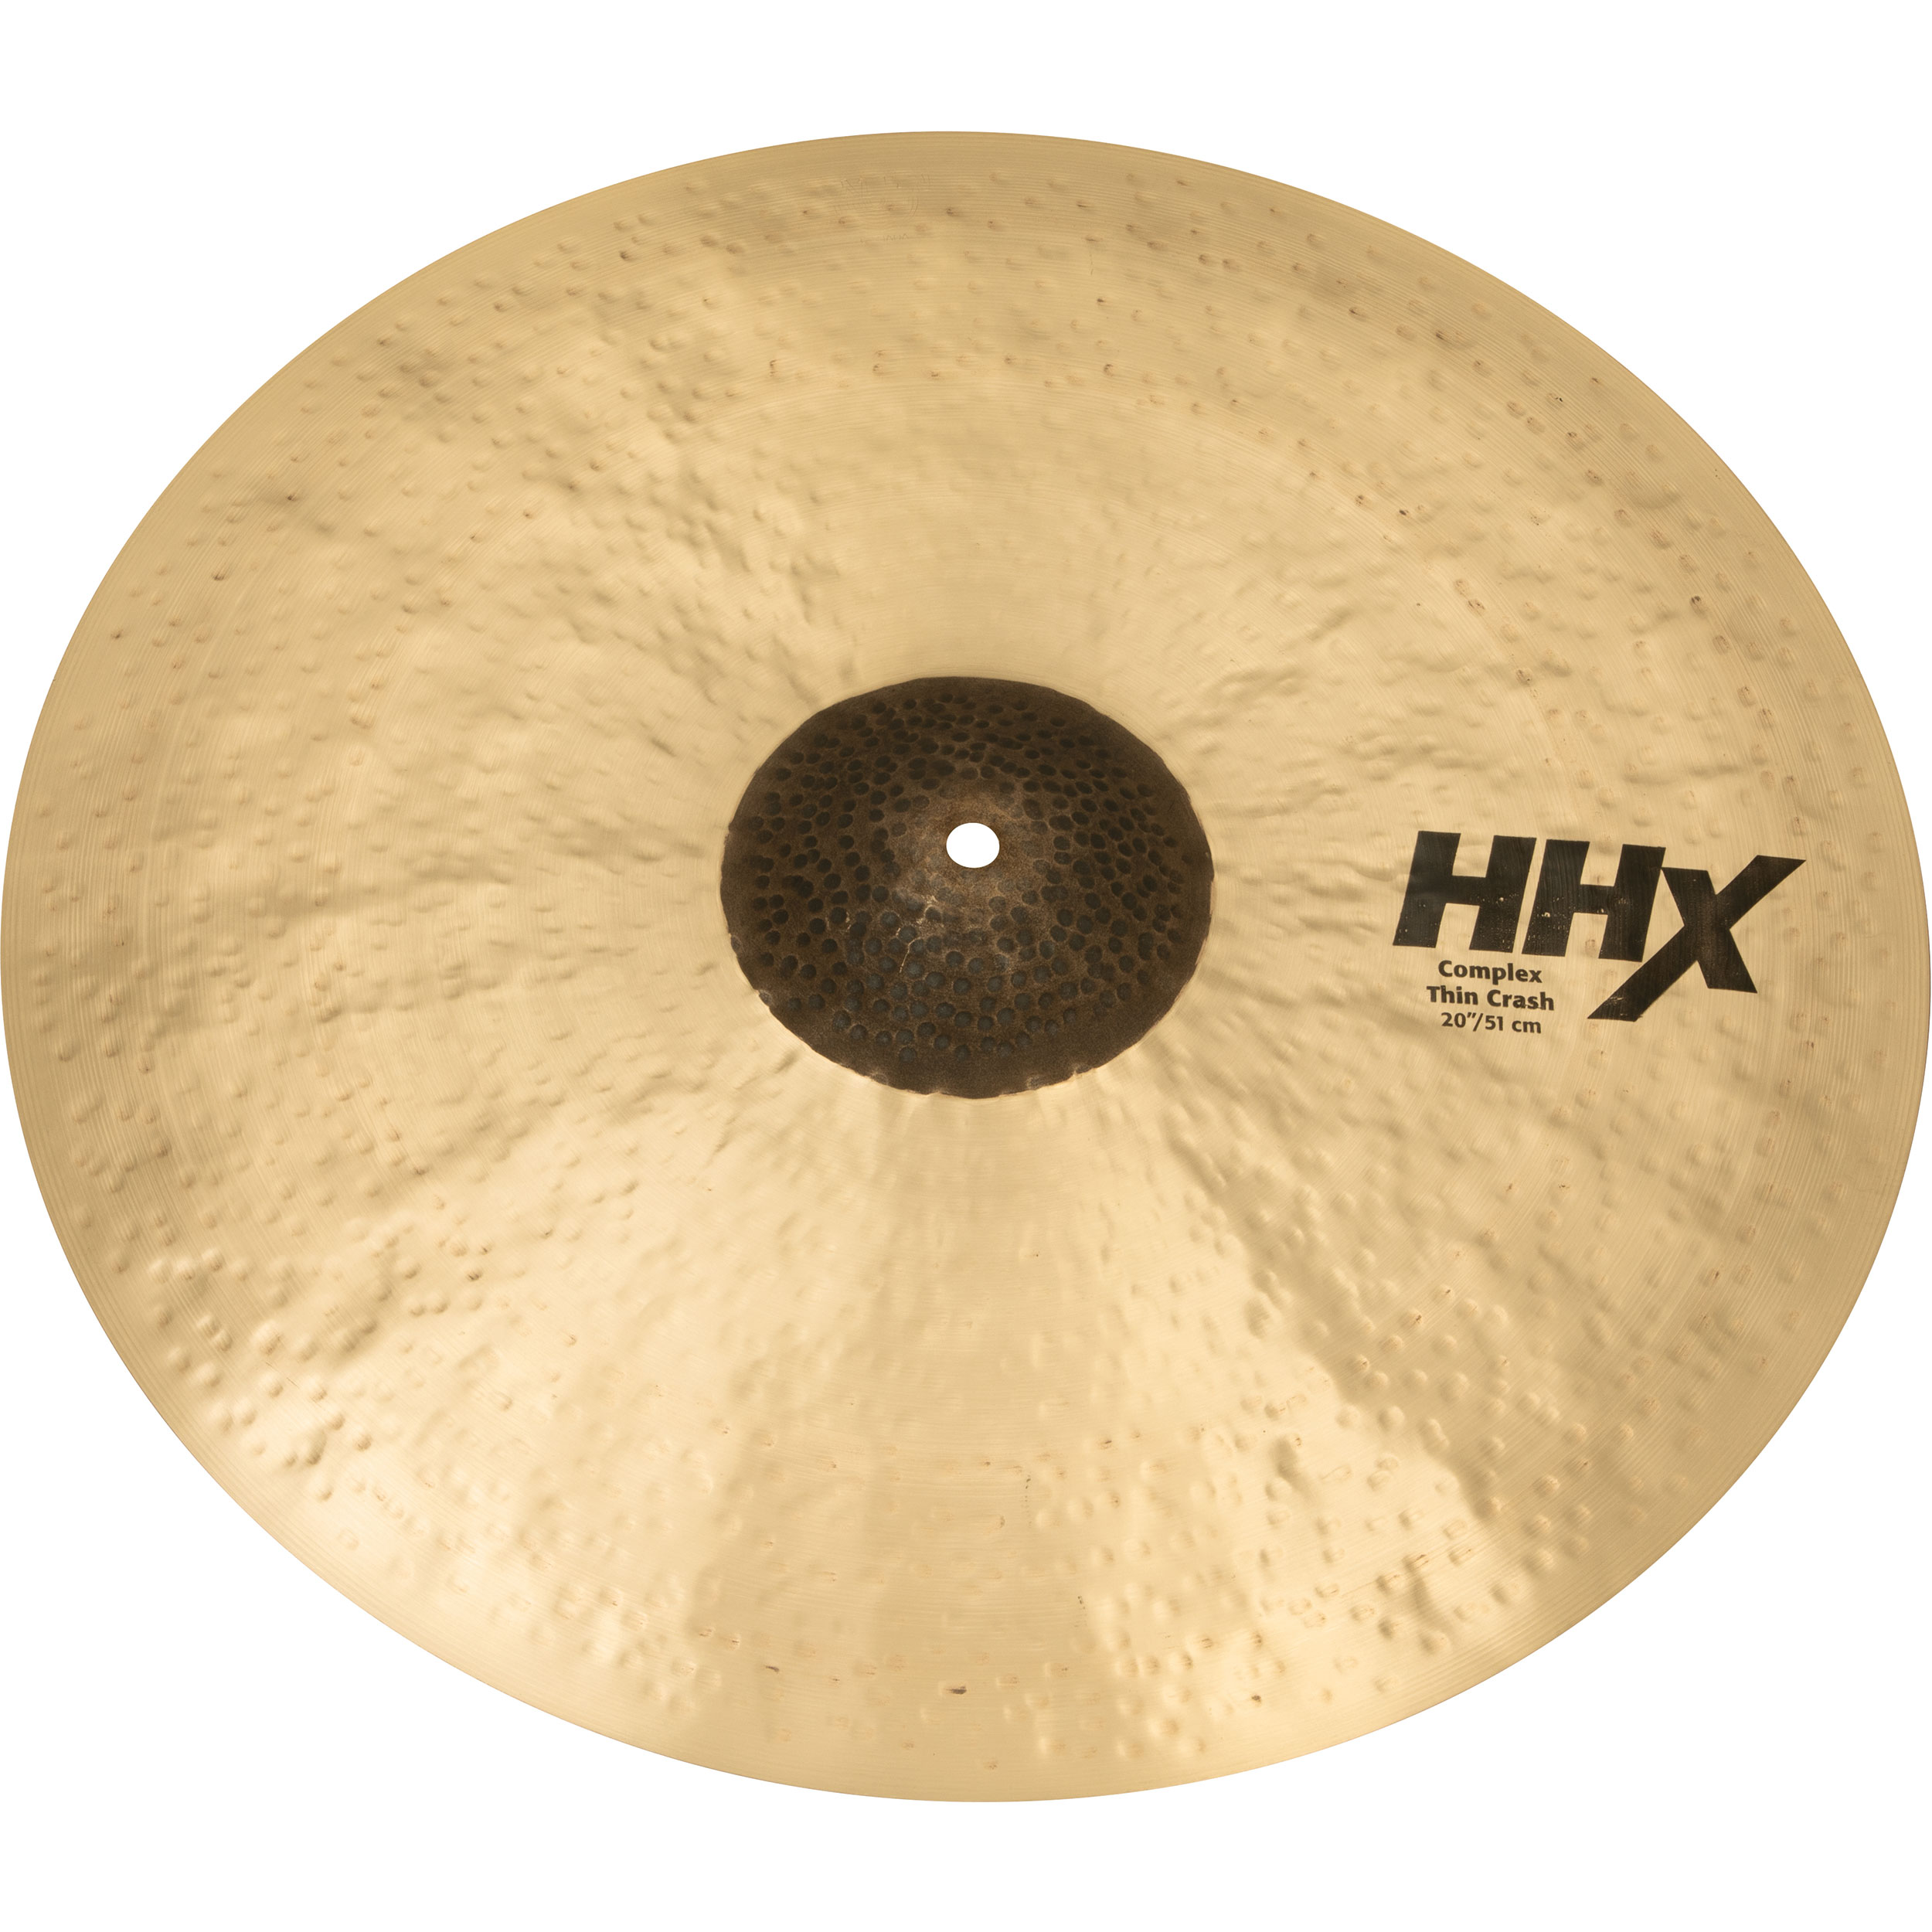 "Sabian 20"" HHX Complex Thin Crash Cymbal"